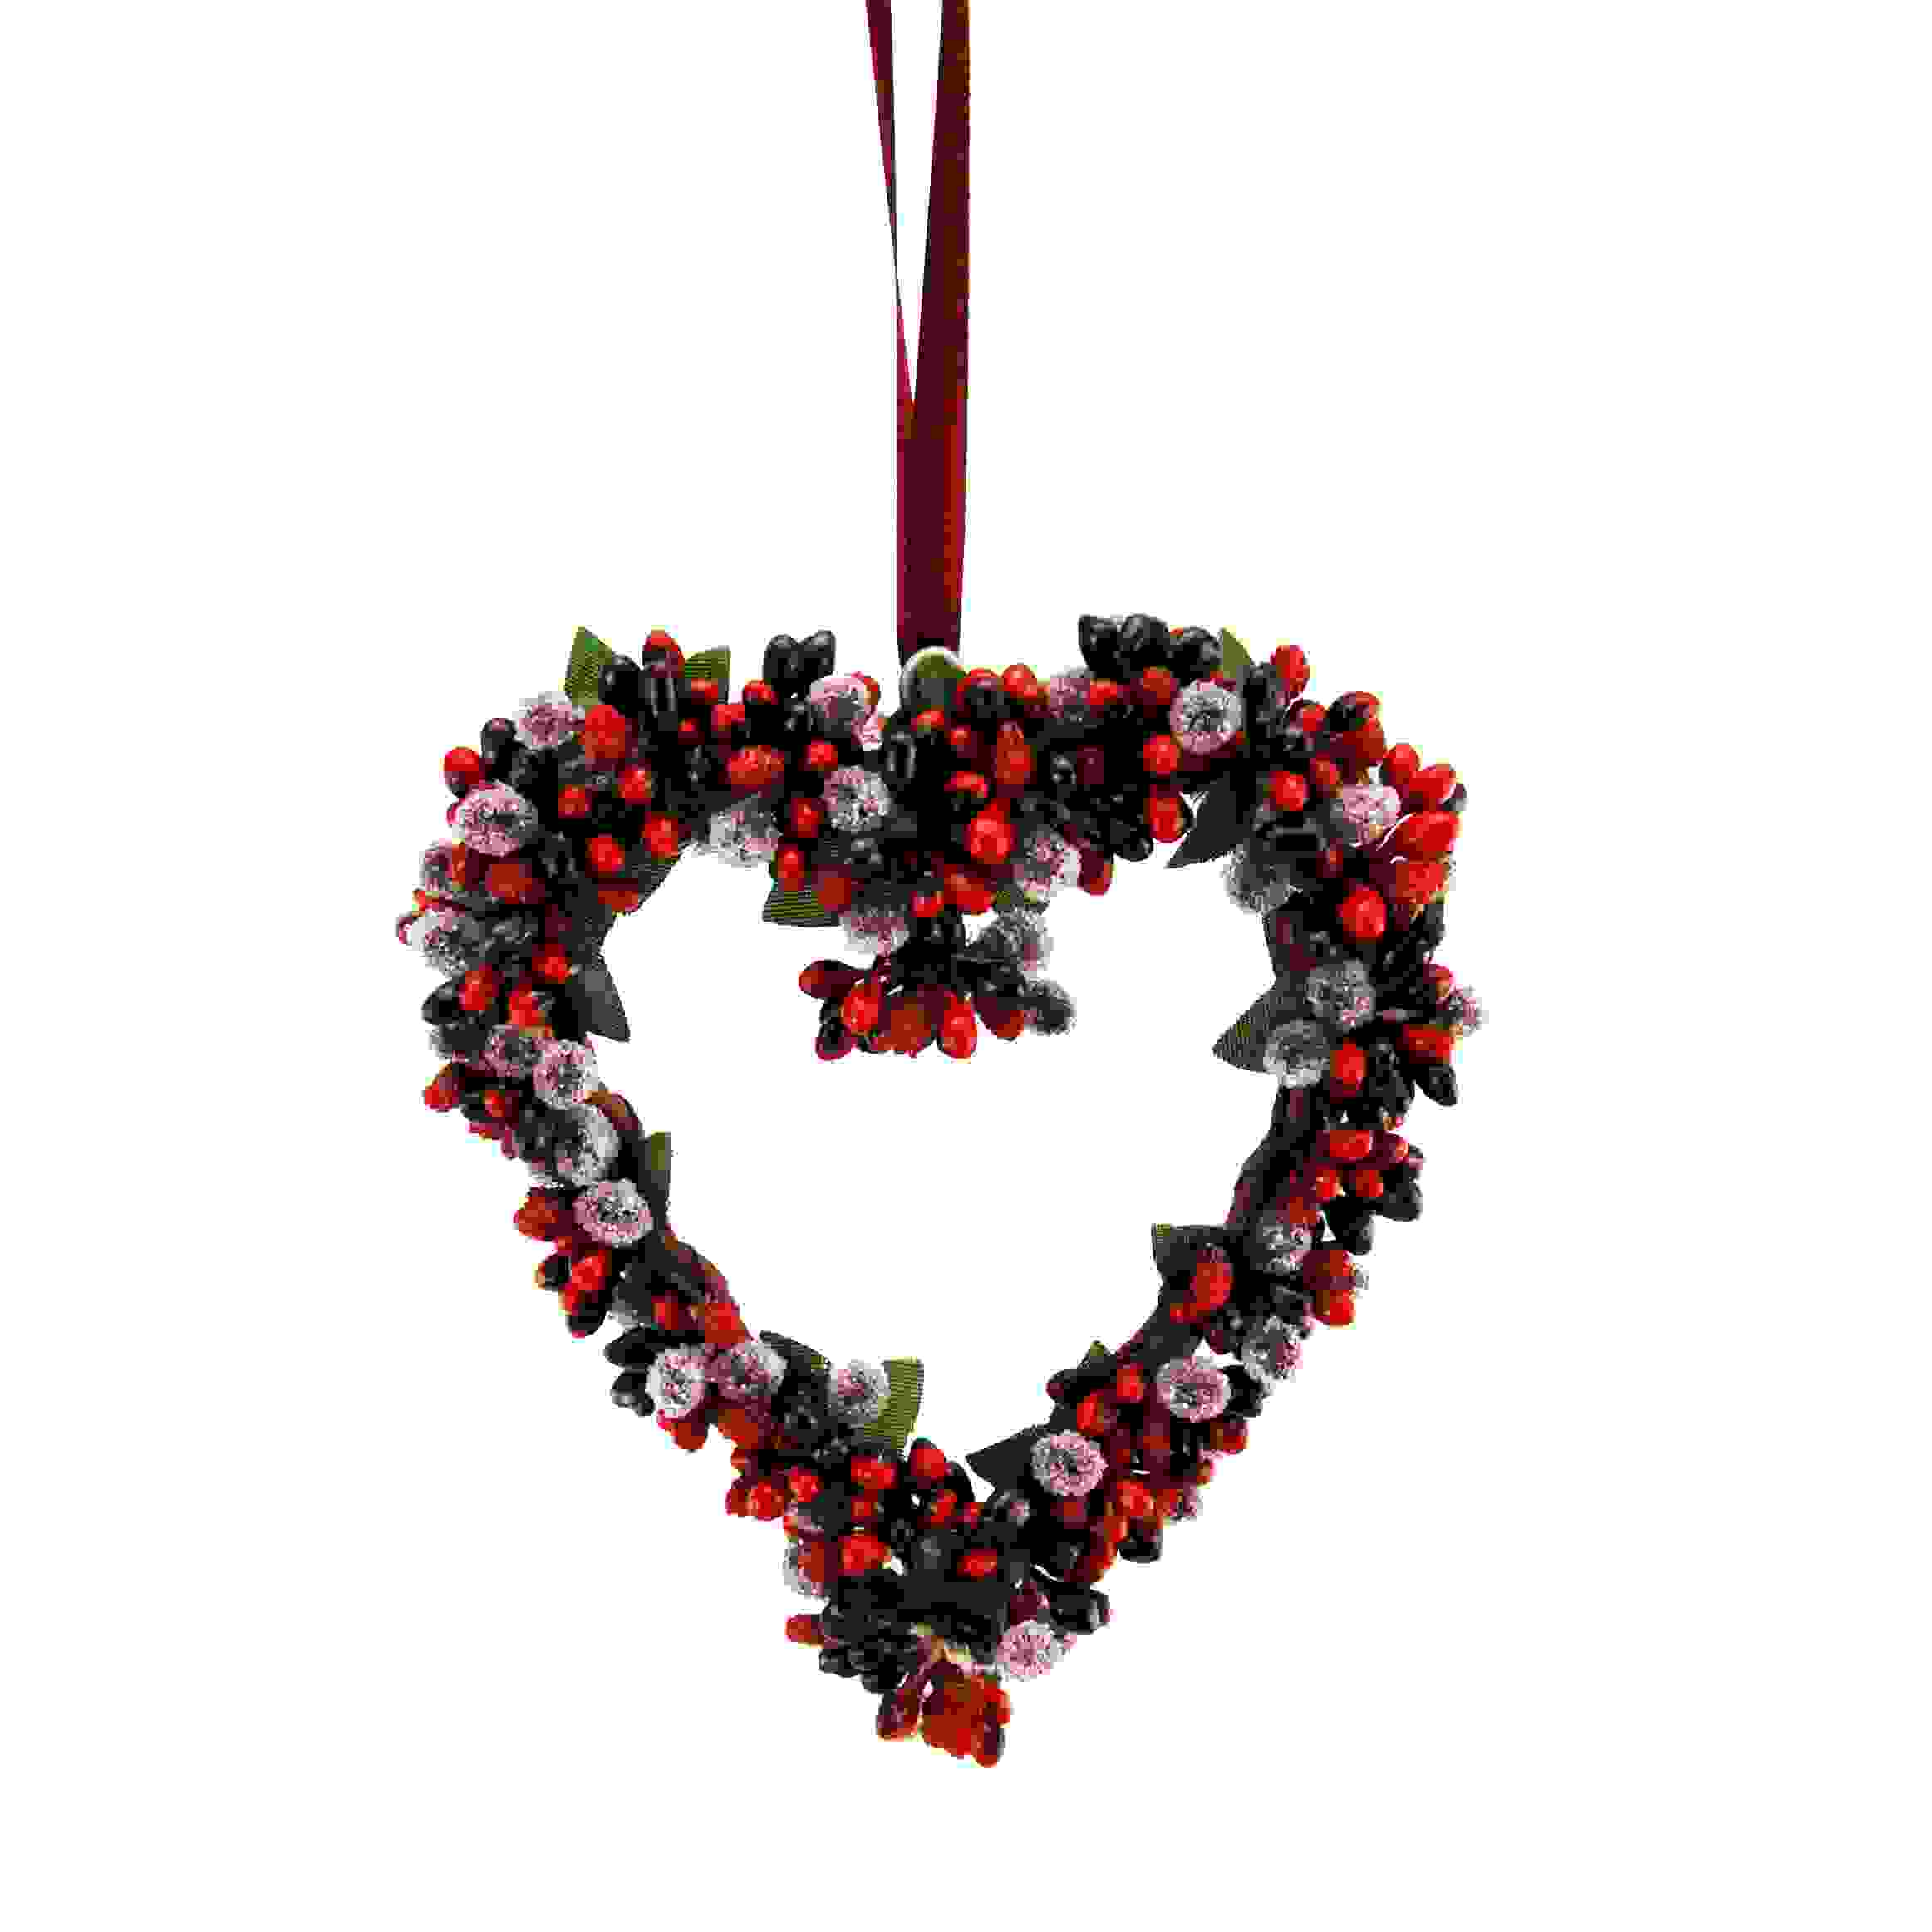 HANG HEART 15CM BERRYBUD RED/BURG.